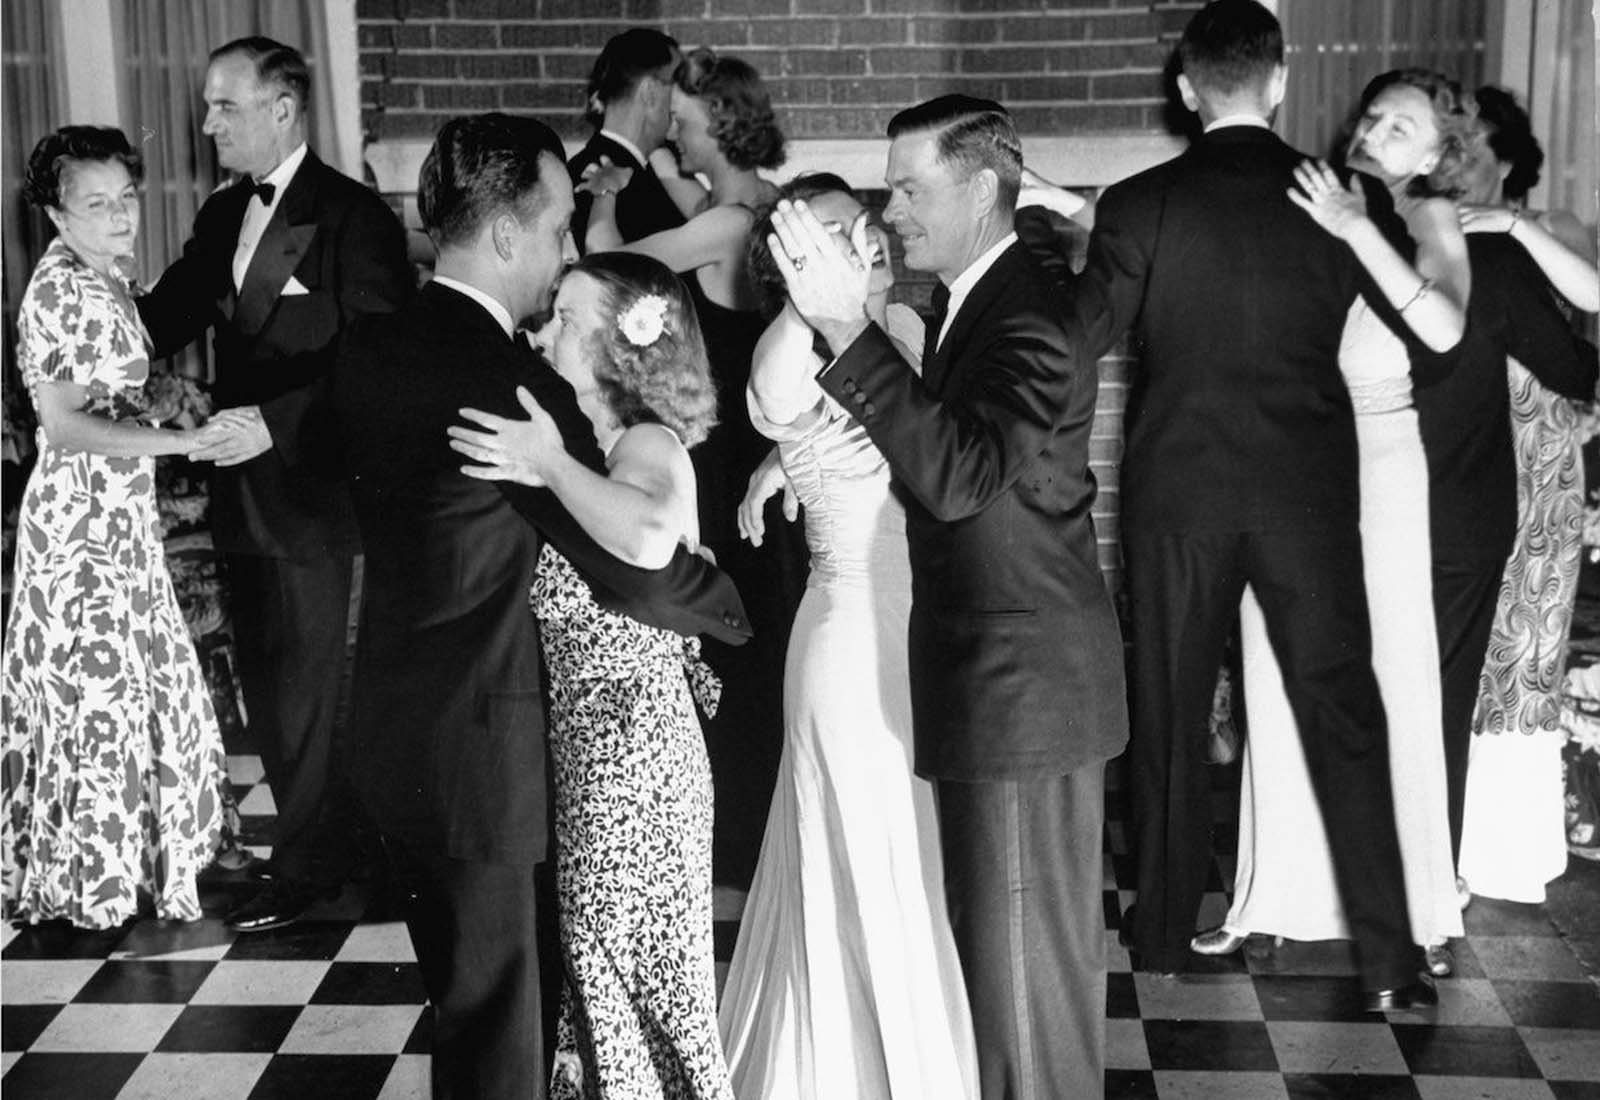 Jane dancing with her husband Gilbert (third from left) amidst other couples at their country club's formal dance.